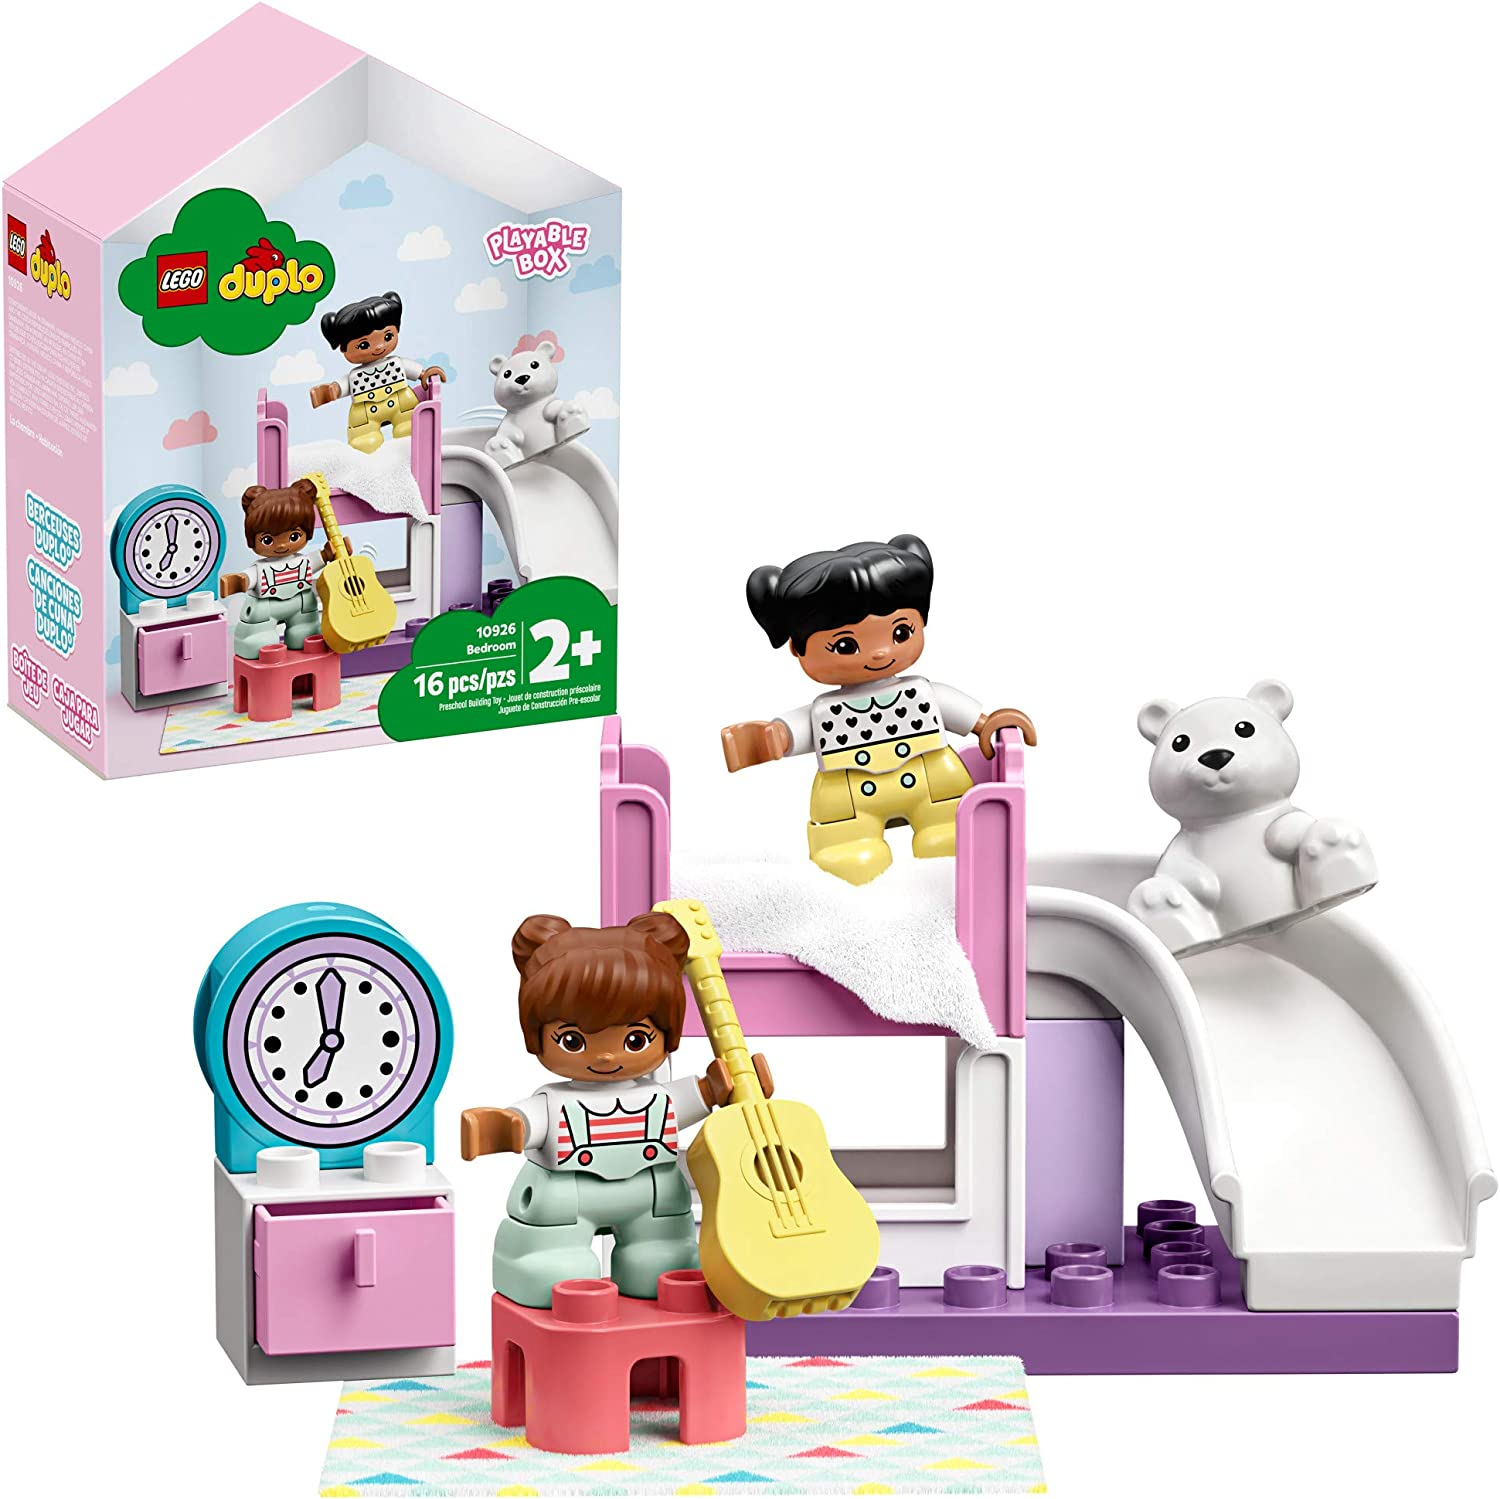 LEGO DUPLO Town Bedroom Max 64% OFF 10926 Play Kids' Devel Set Animer and price revision Pretend